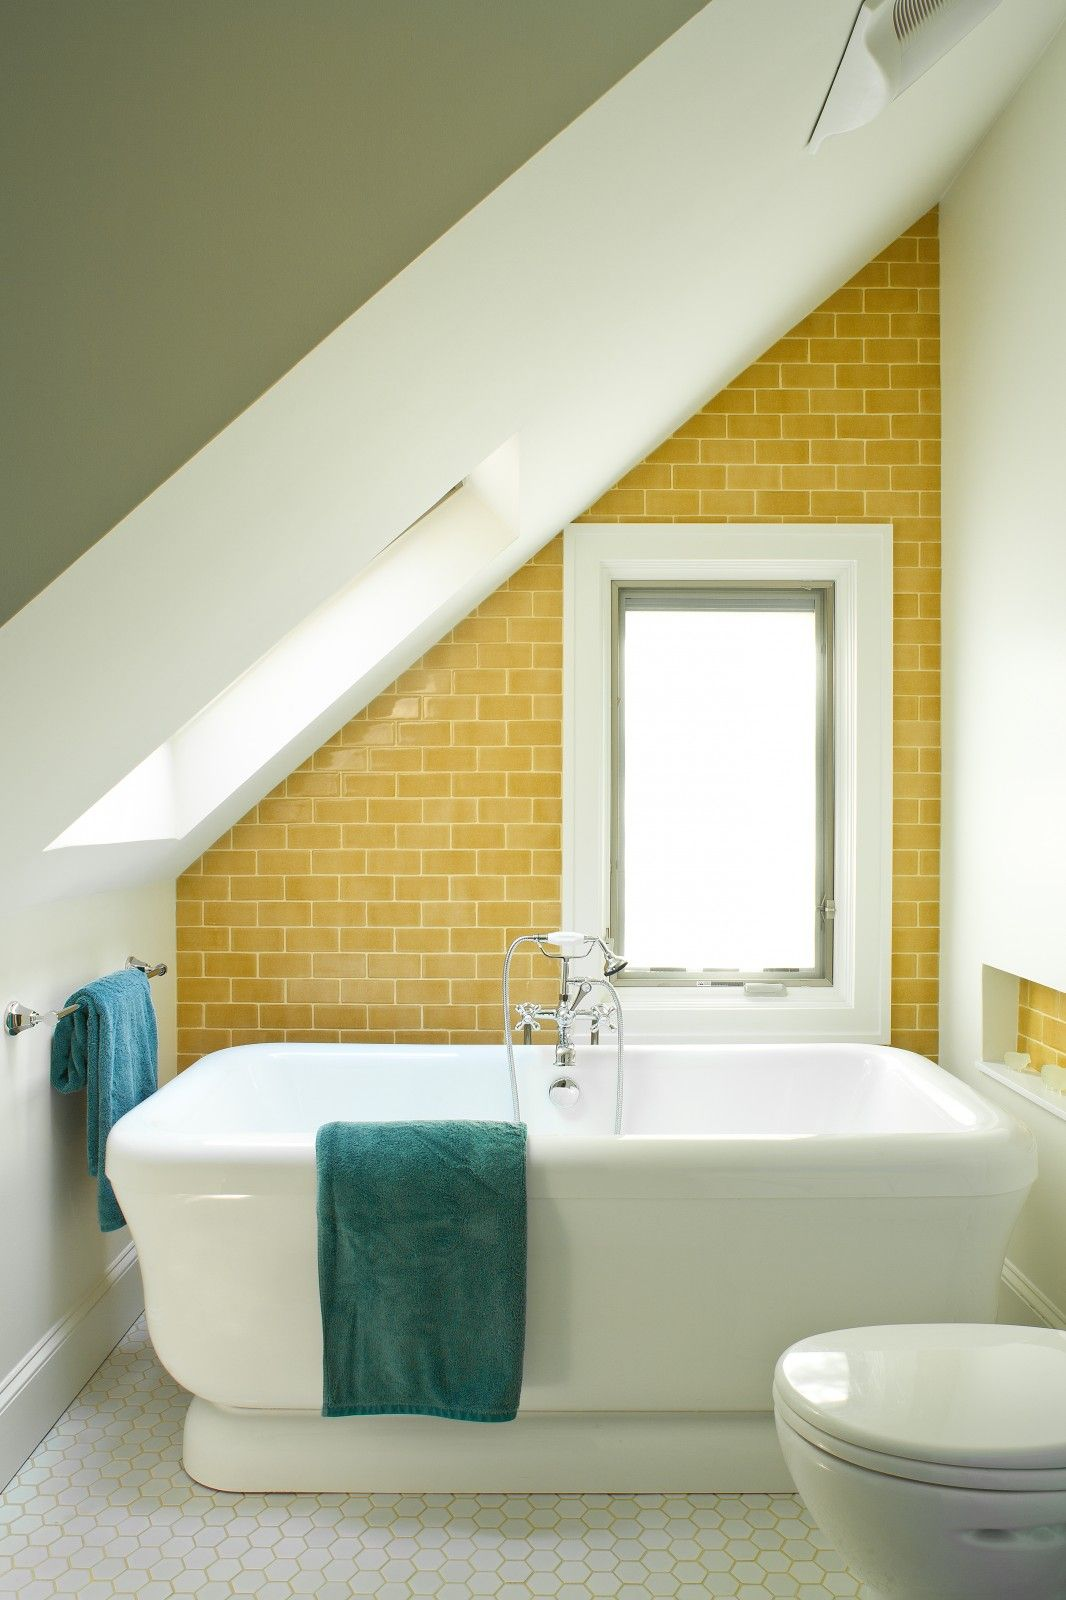 Love the subway tile + matching grout color of the floor tile ...